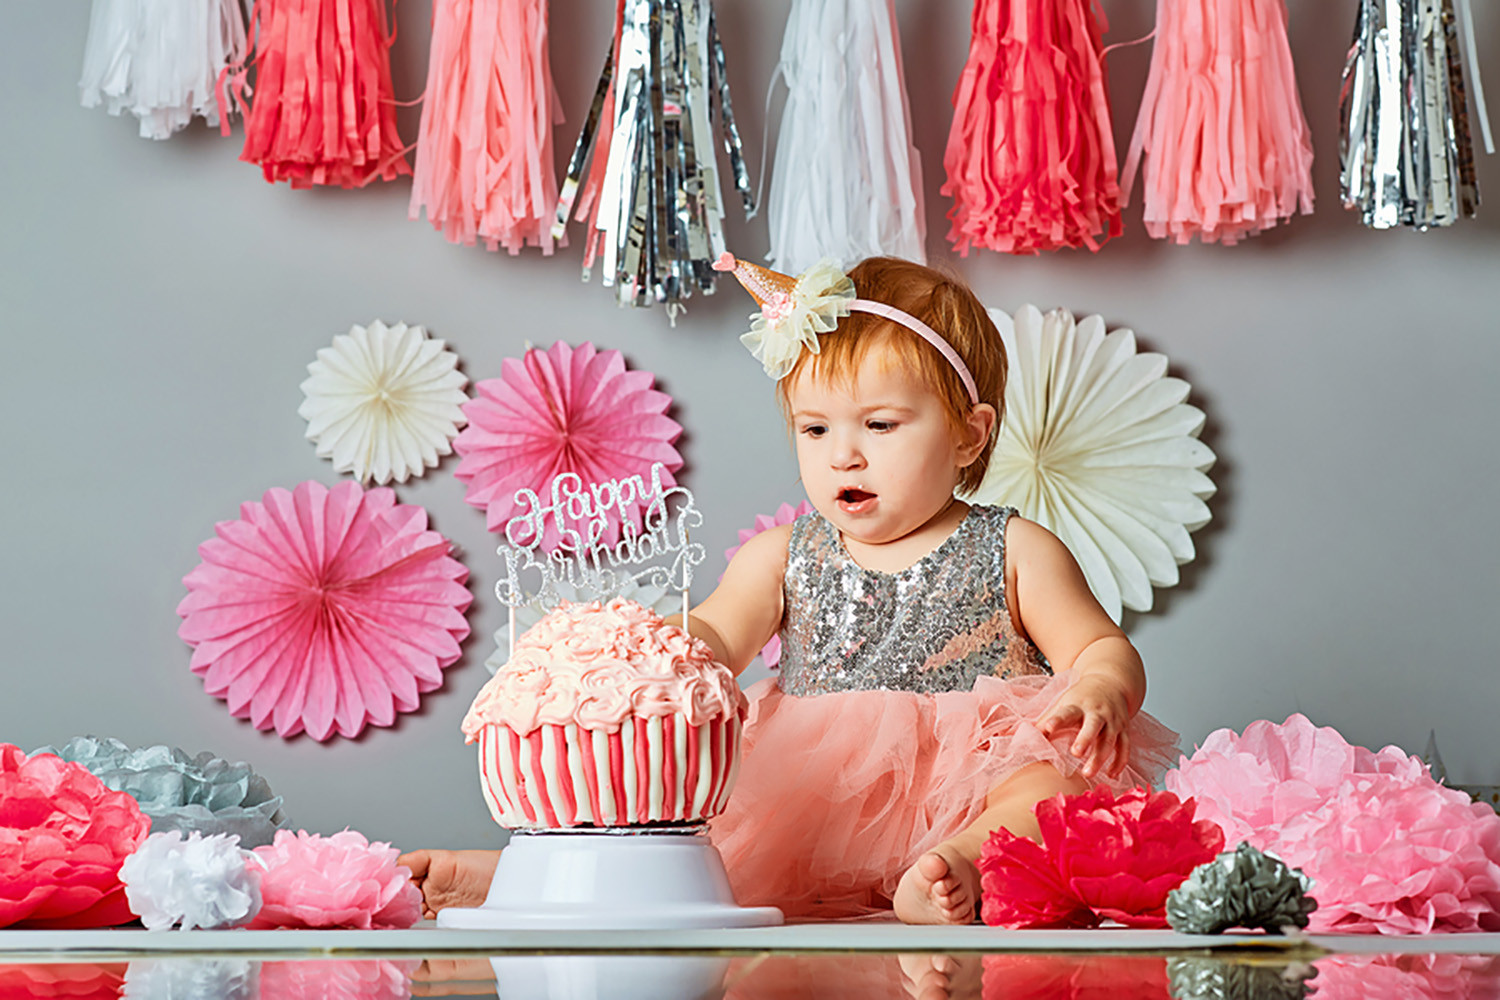 Baby First Party Ideas  Baby s 1st Birthday Gifts & Party Ideas for Boys & Girls